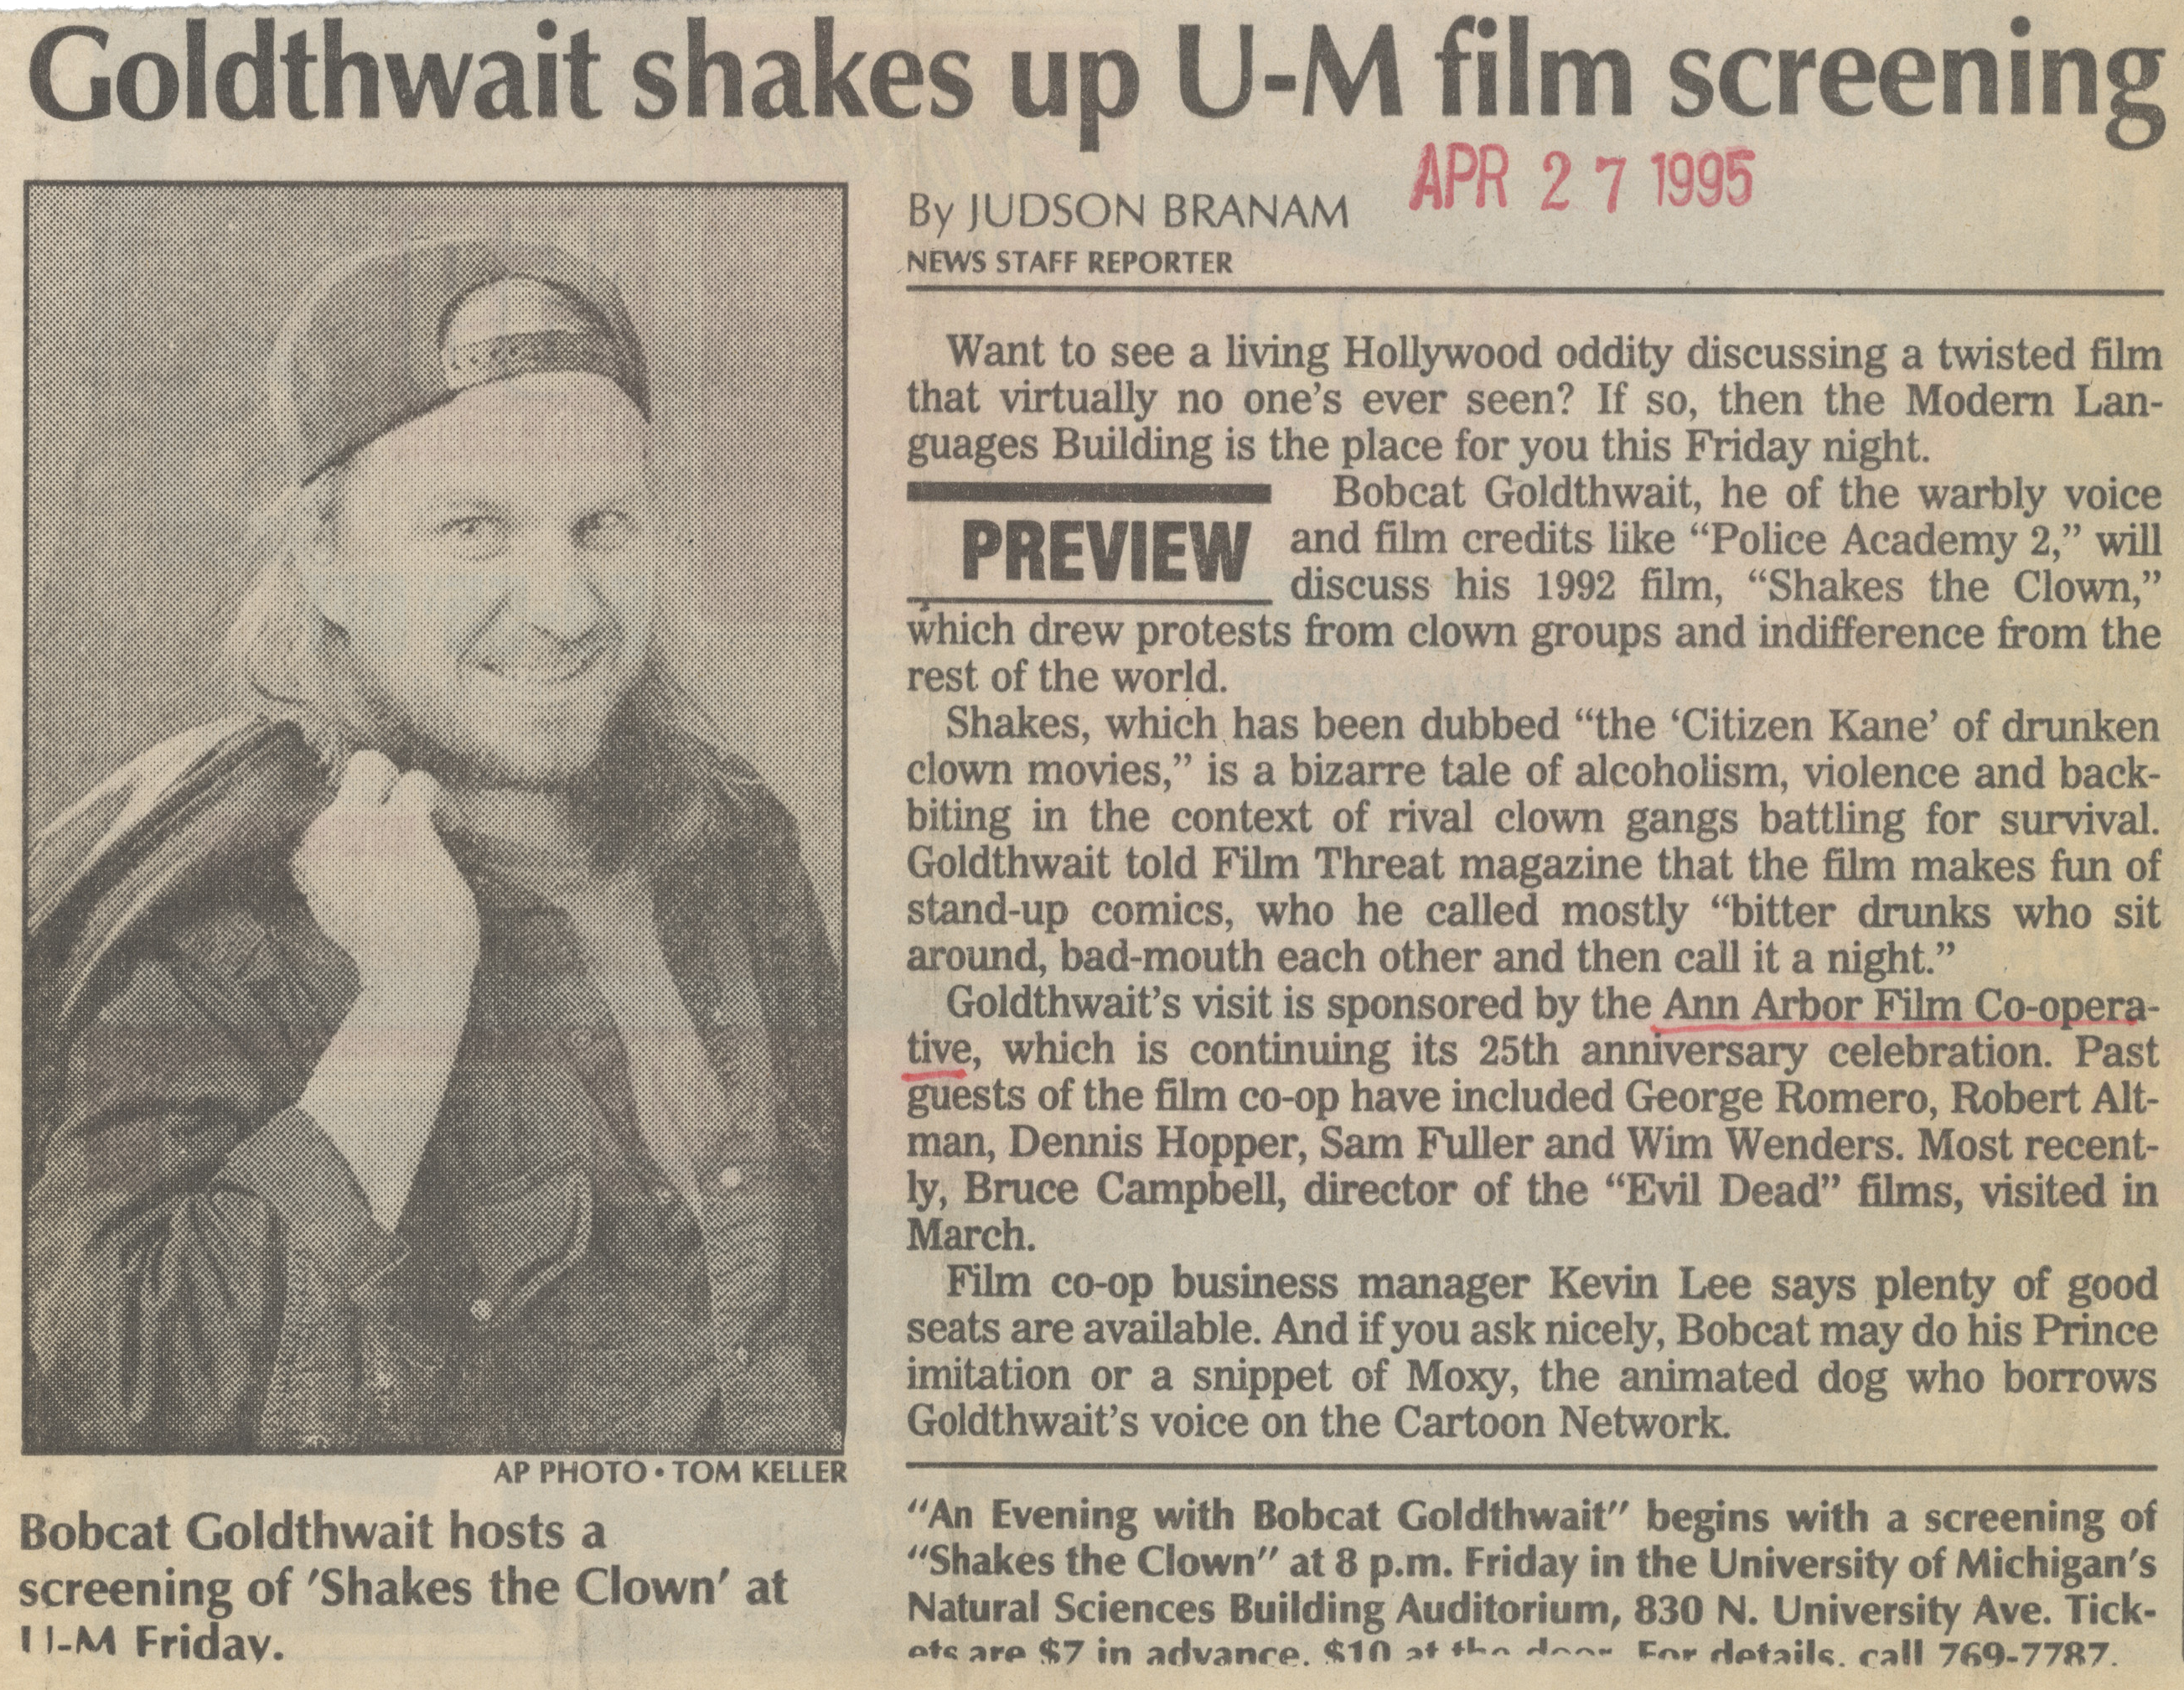 Goldthwait shakes up U-M film screening image